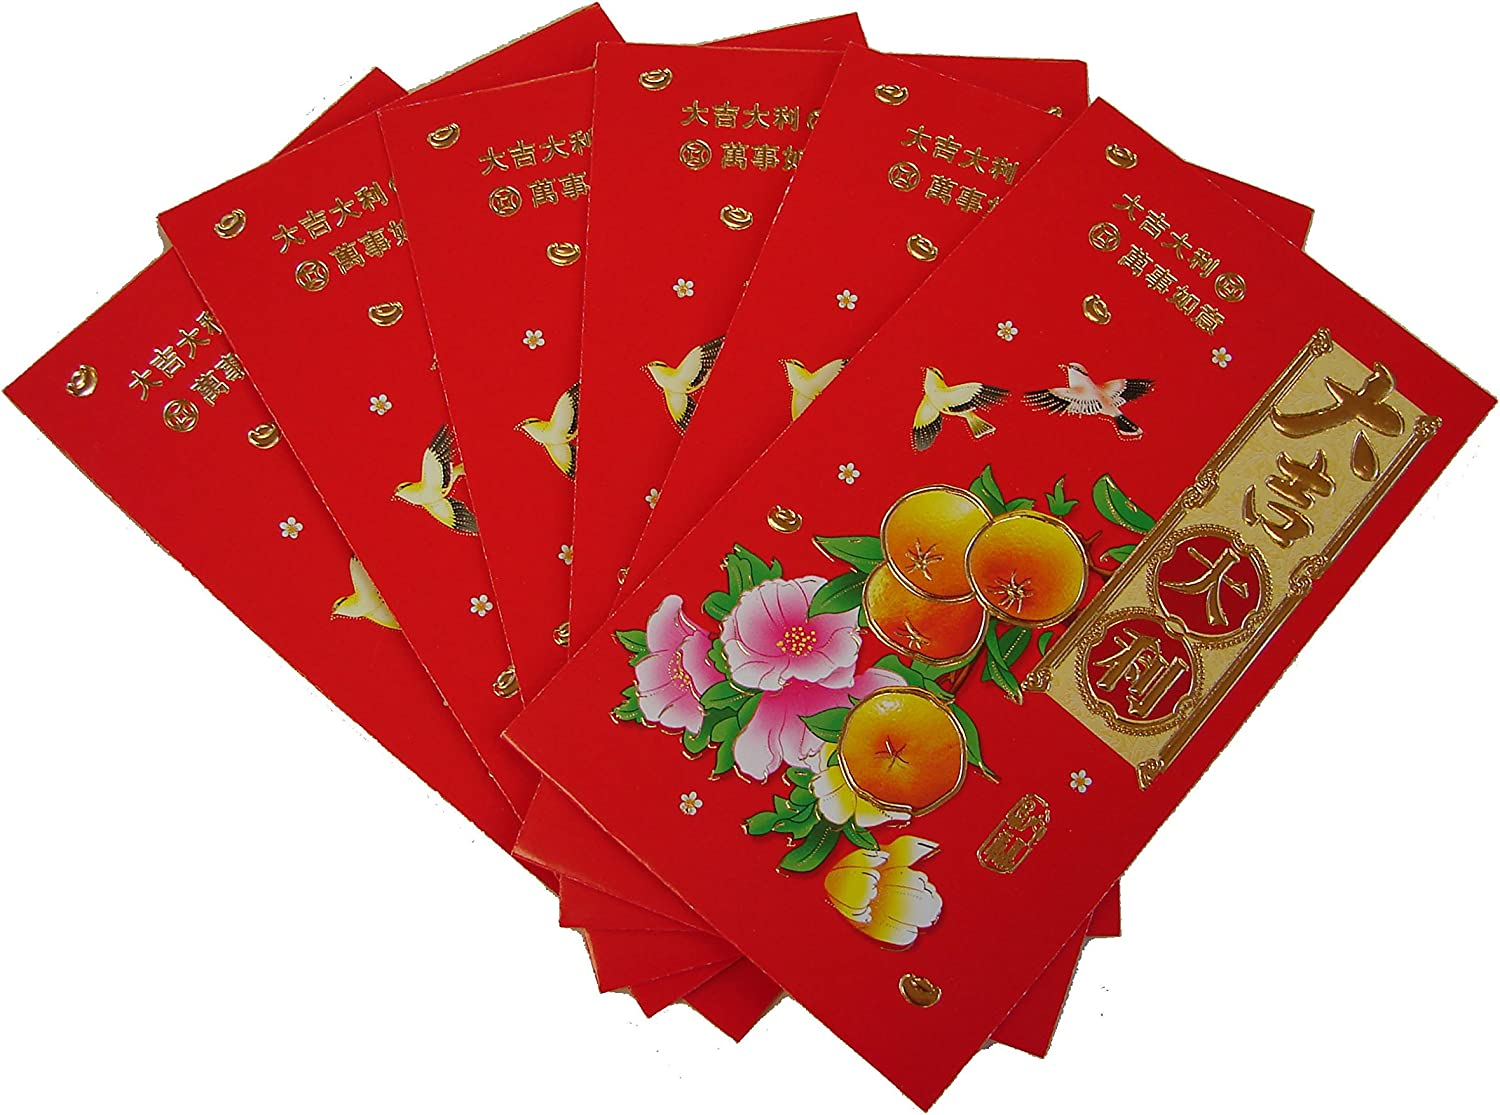 US-6PCS M size Chinese New Year Money Envelopes HongBao Red Packet W// Fortune Fu